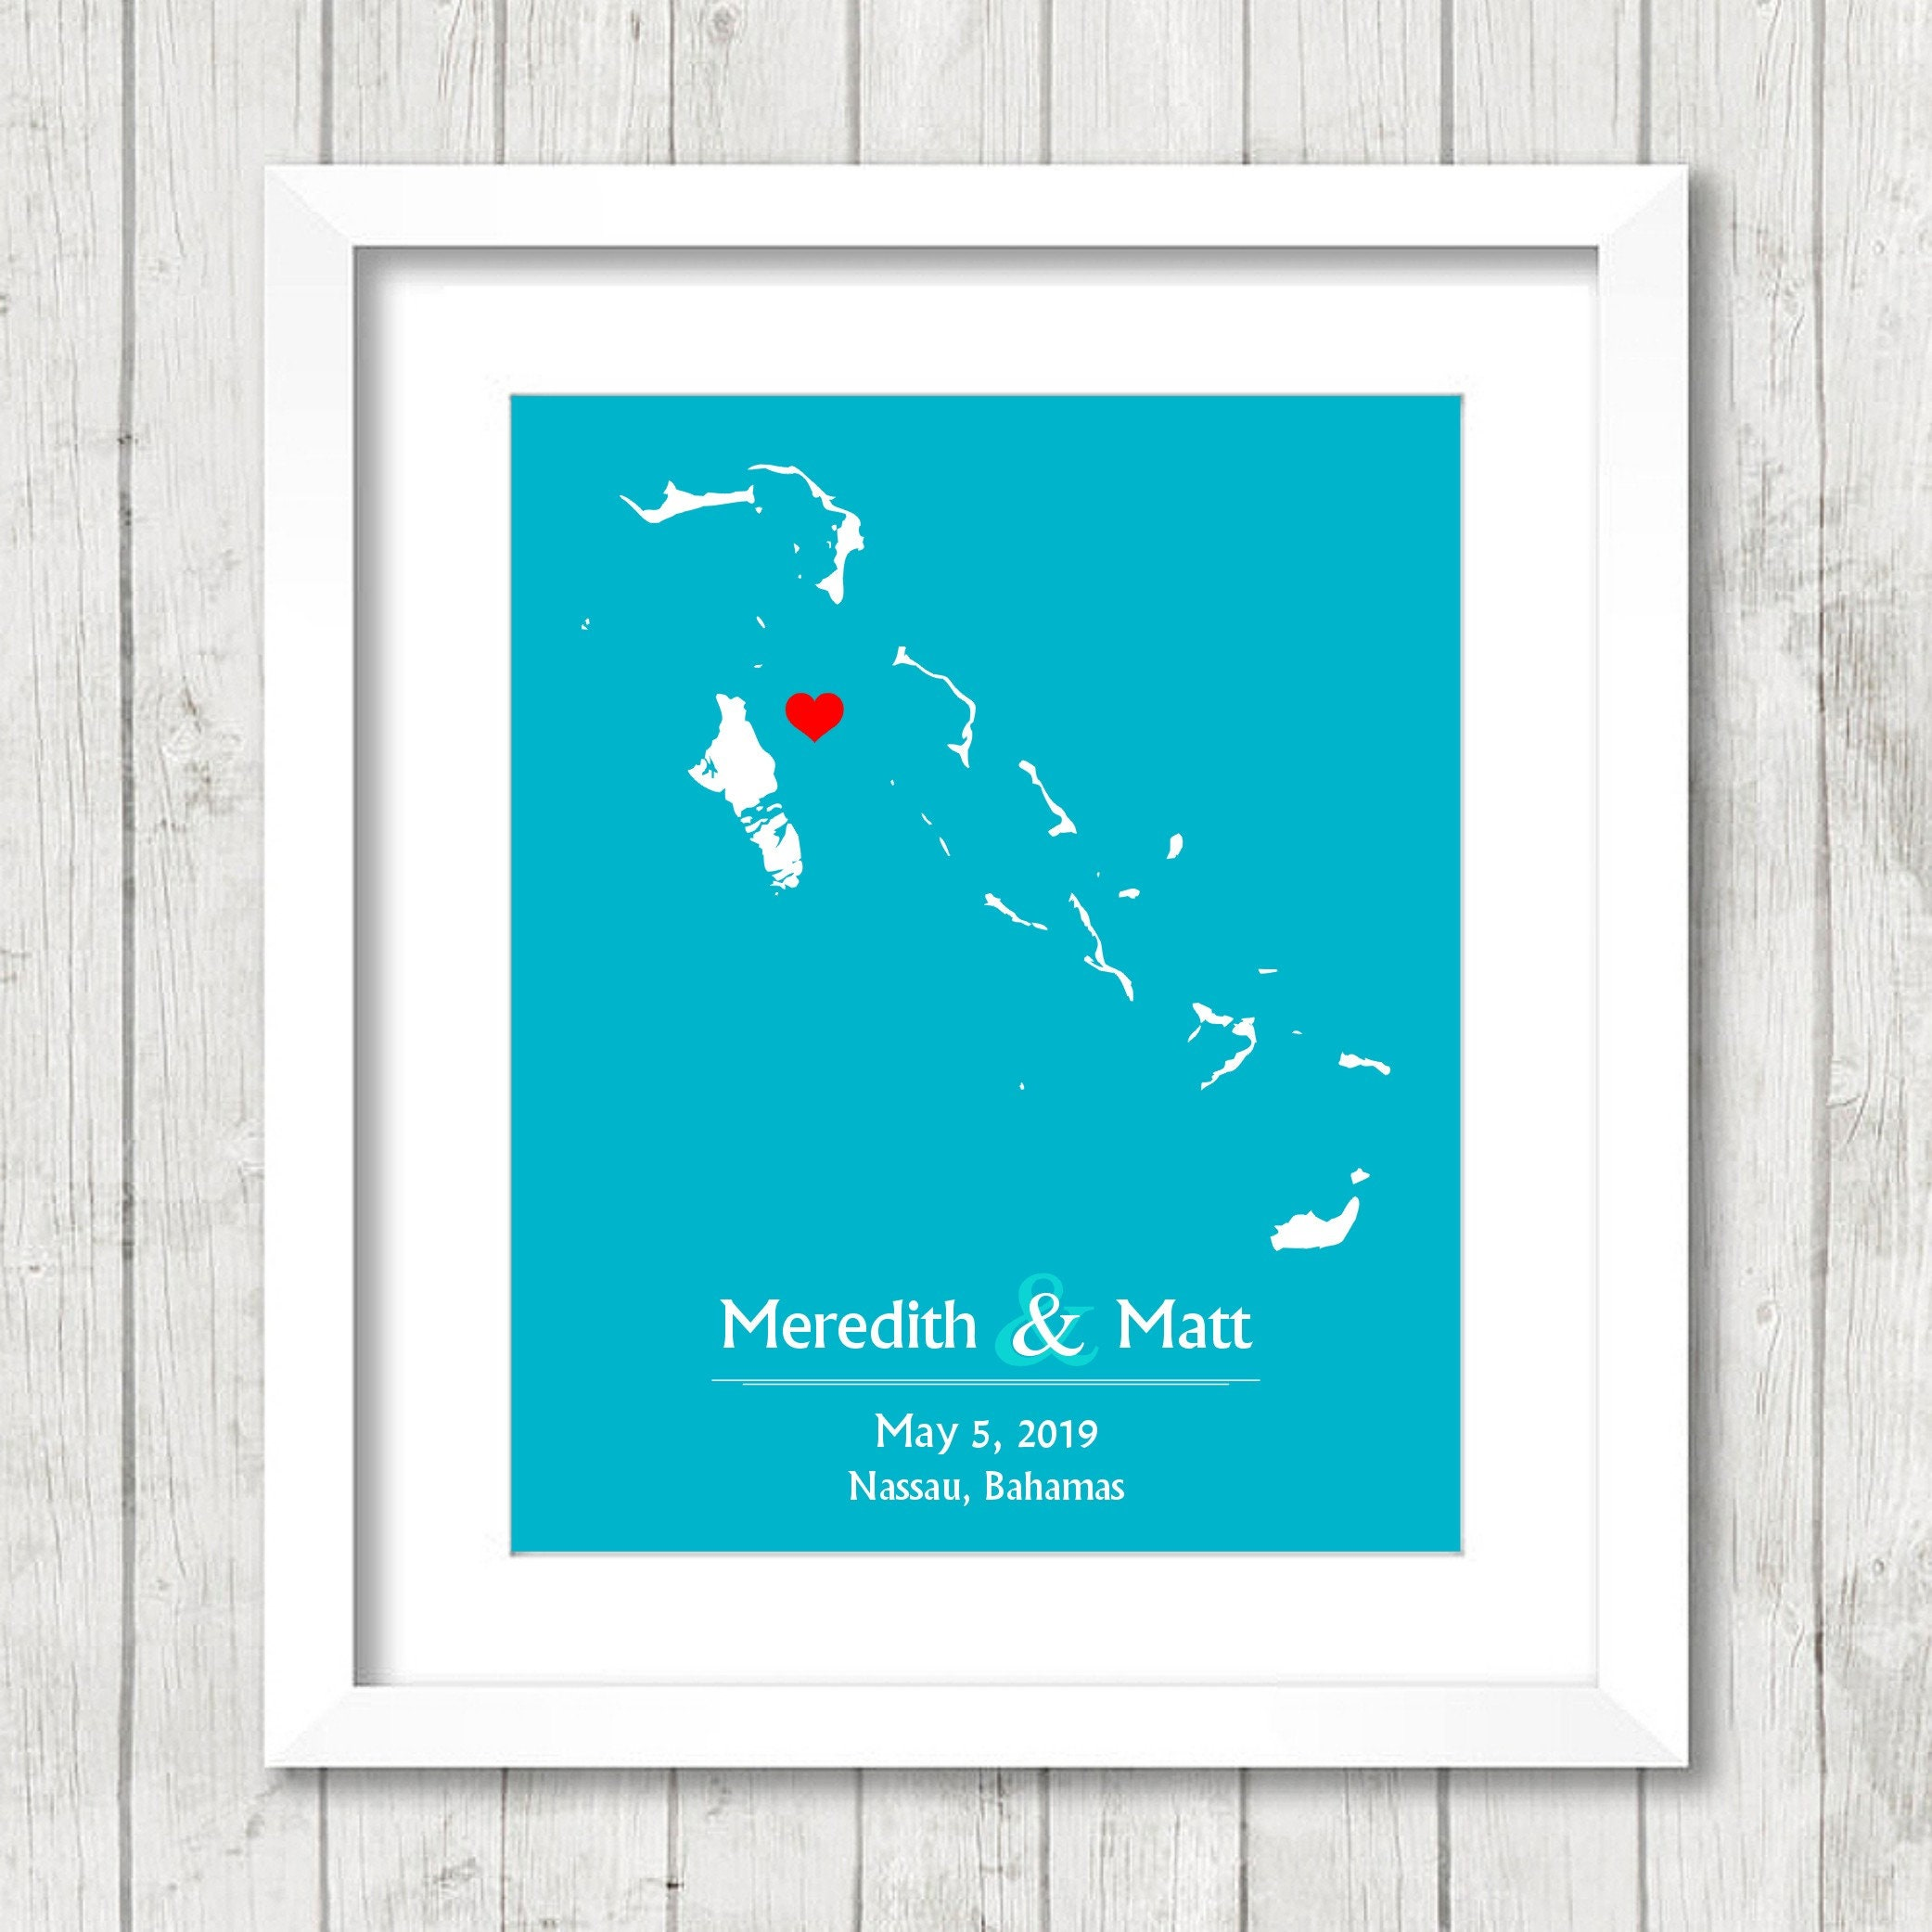 Bahamas Love Map Nassau New Providence Bahamas Wedding Caribbean Wedding Engagement Anniversary Gift Newlyweds Exuma